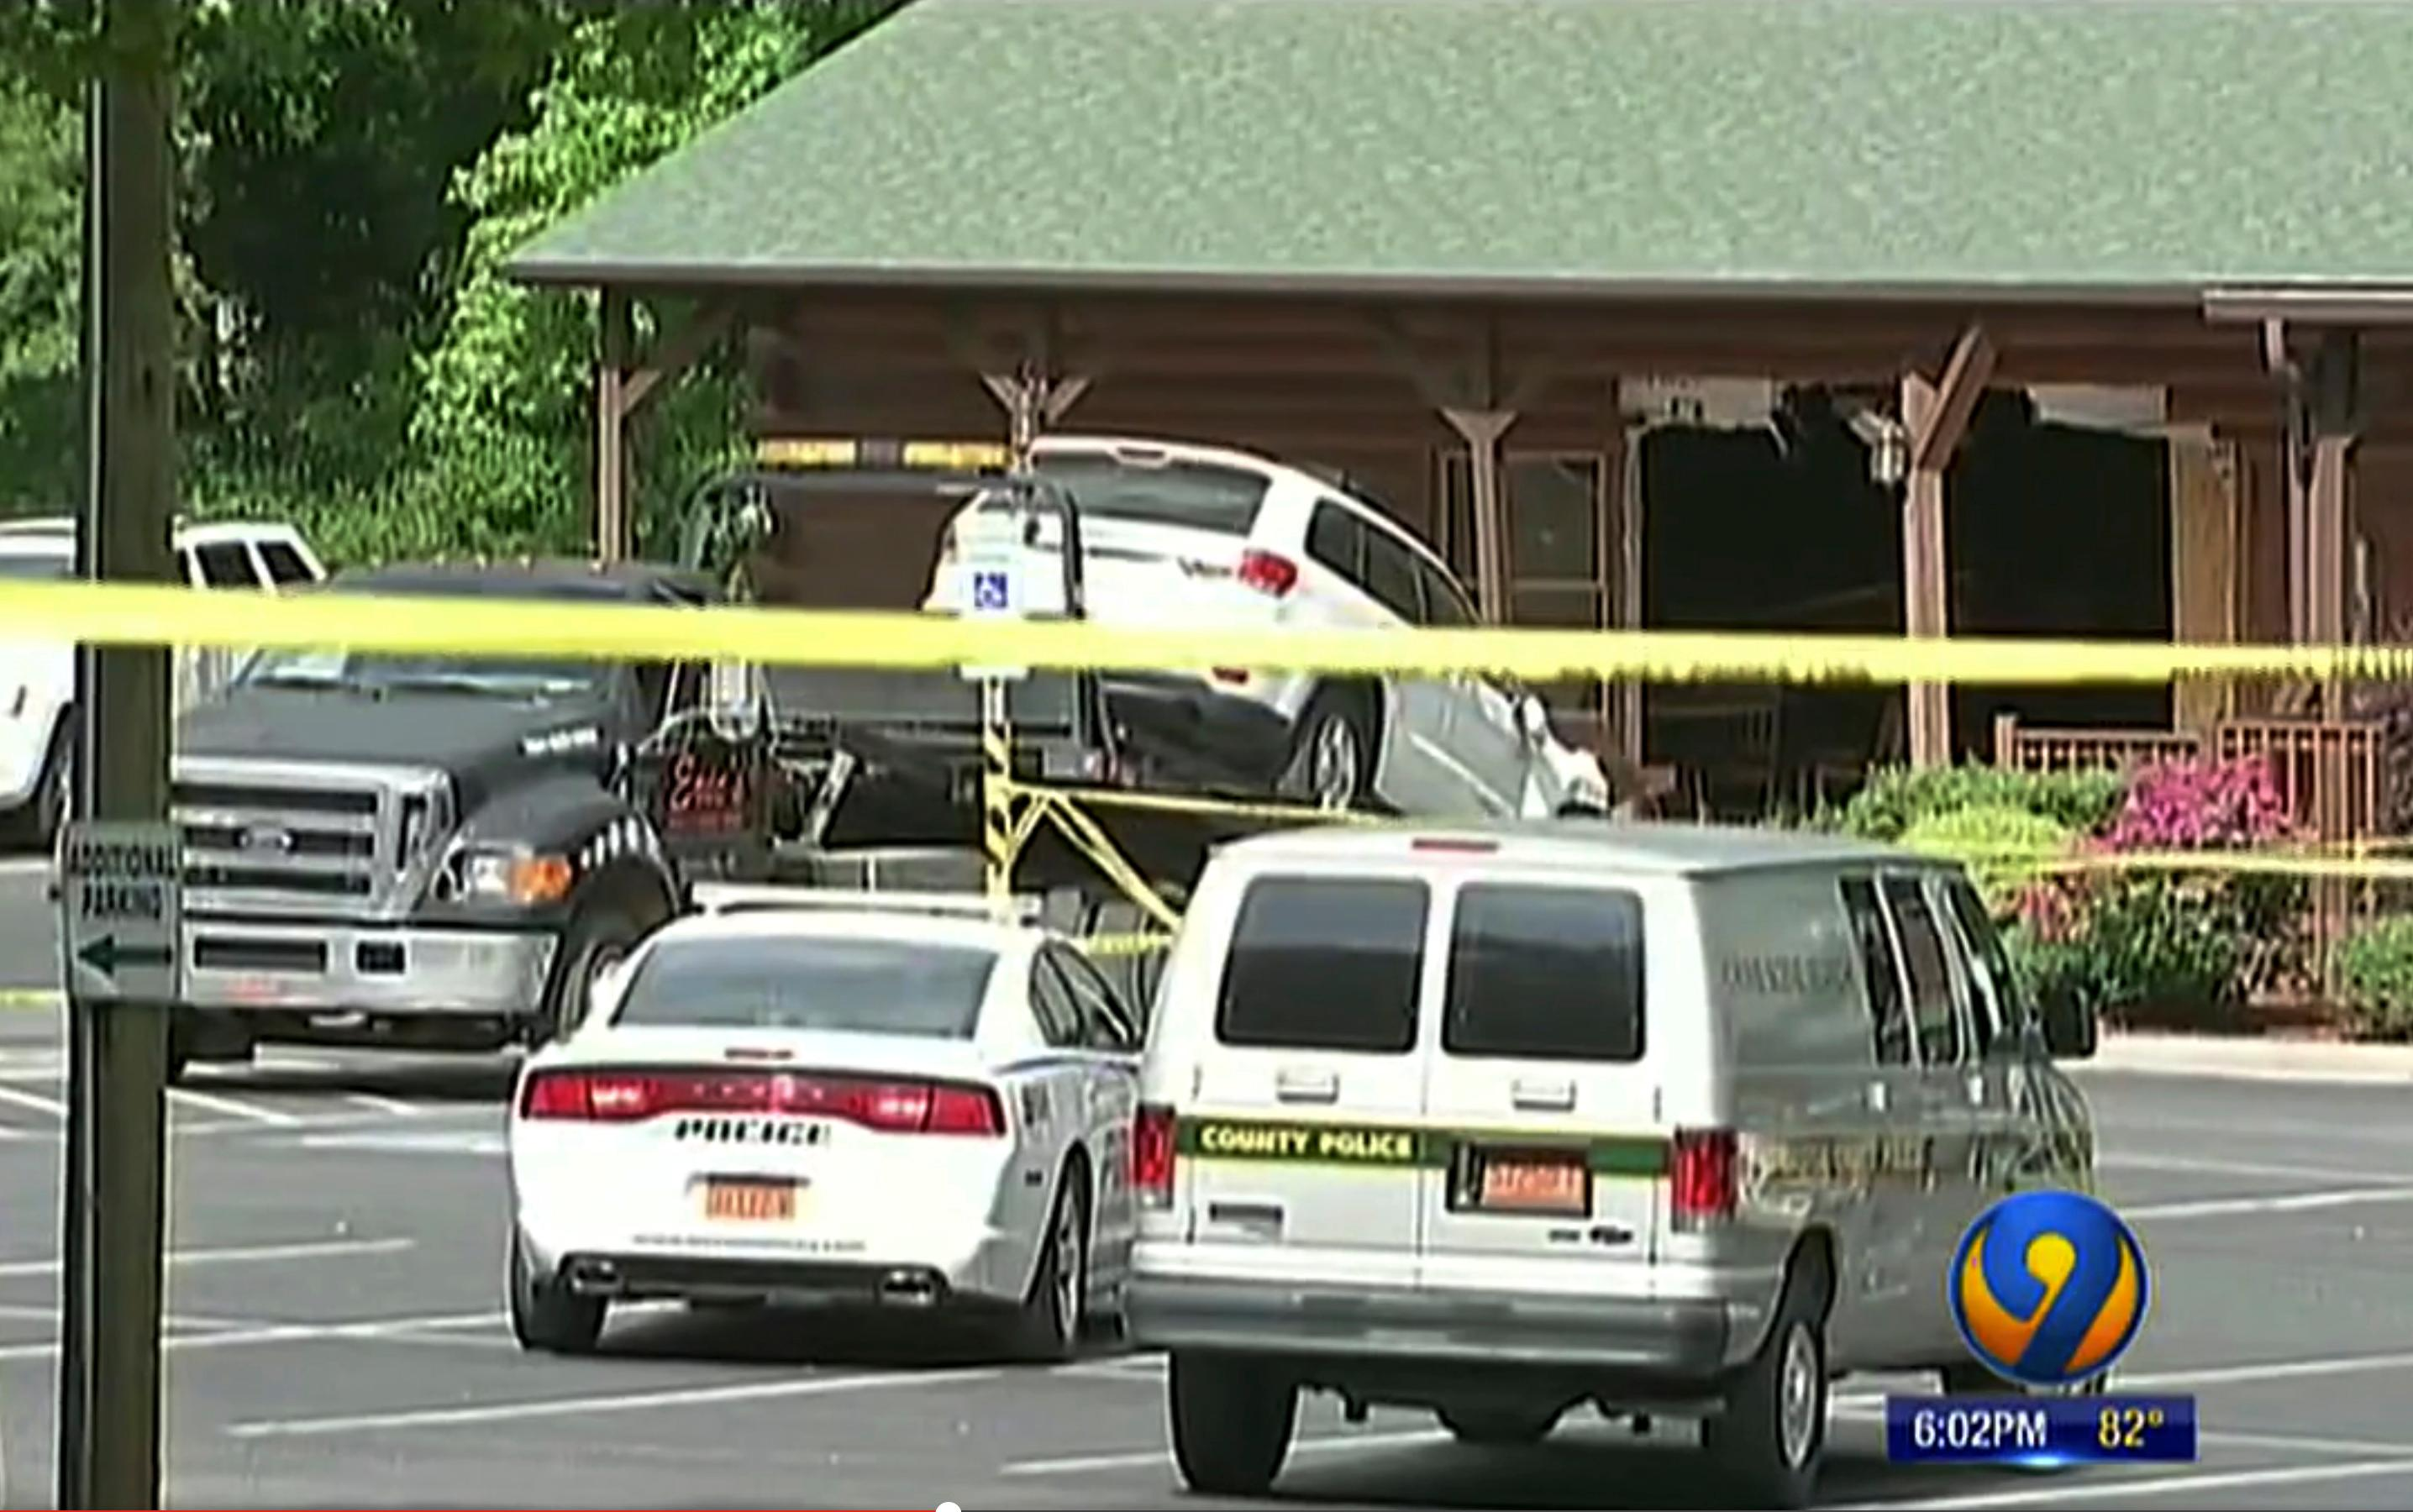 This frame grab from video provided by WSOC-TV 9 in Charlotte, N.C., shows an SUV driven by Roger Self being towed from the scene after Self intentionally rammed his vehicle into a restaurant busy with a lunchtime crowd, Sunday, May 20, 2018, killing his daughter and another person and injuring several others, in Bessemer City, N.C., according to authorities. (Courtesy of WSOC-TV 9 via AP)